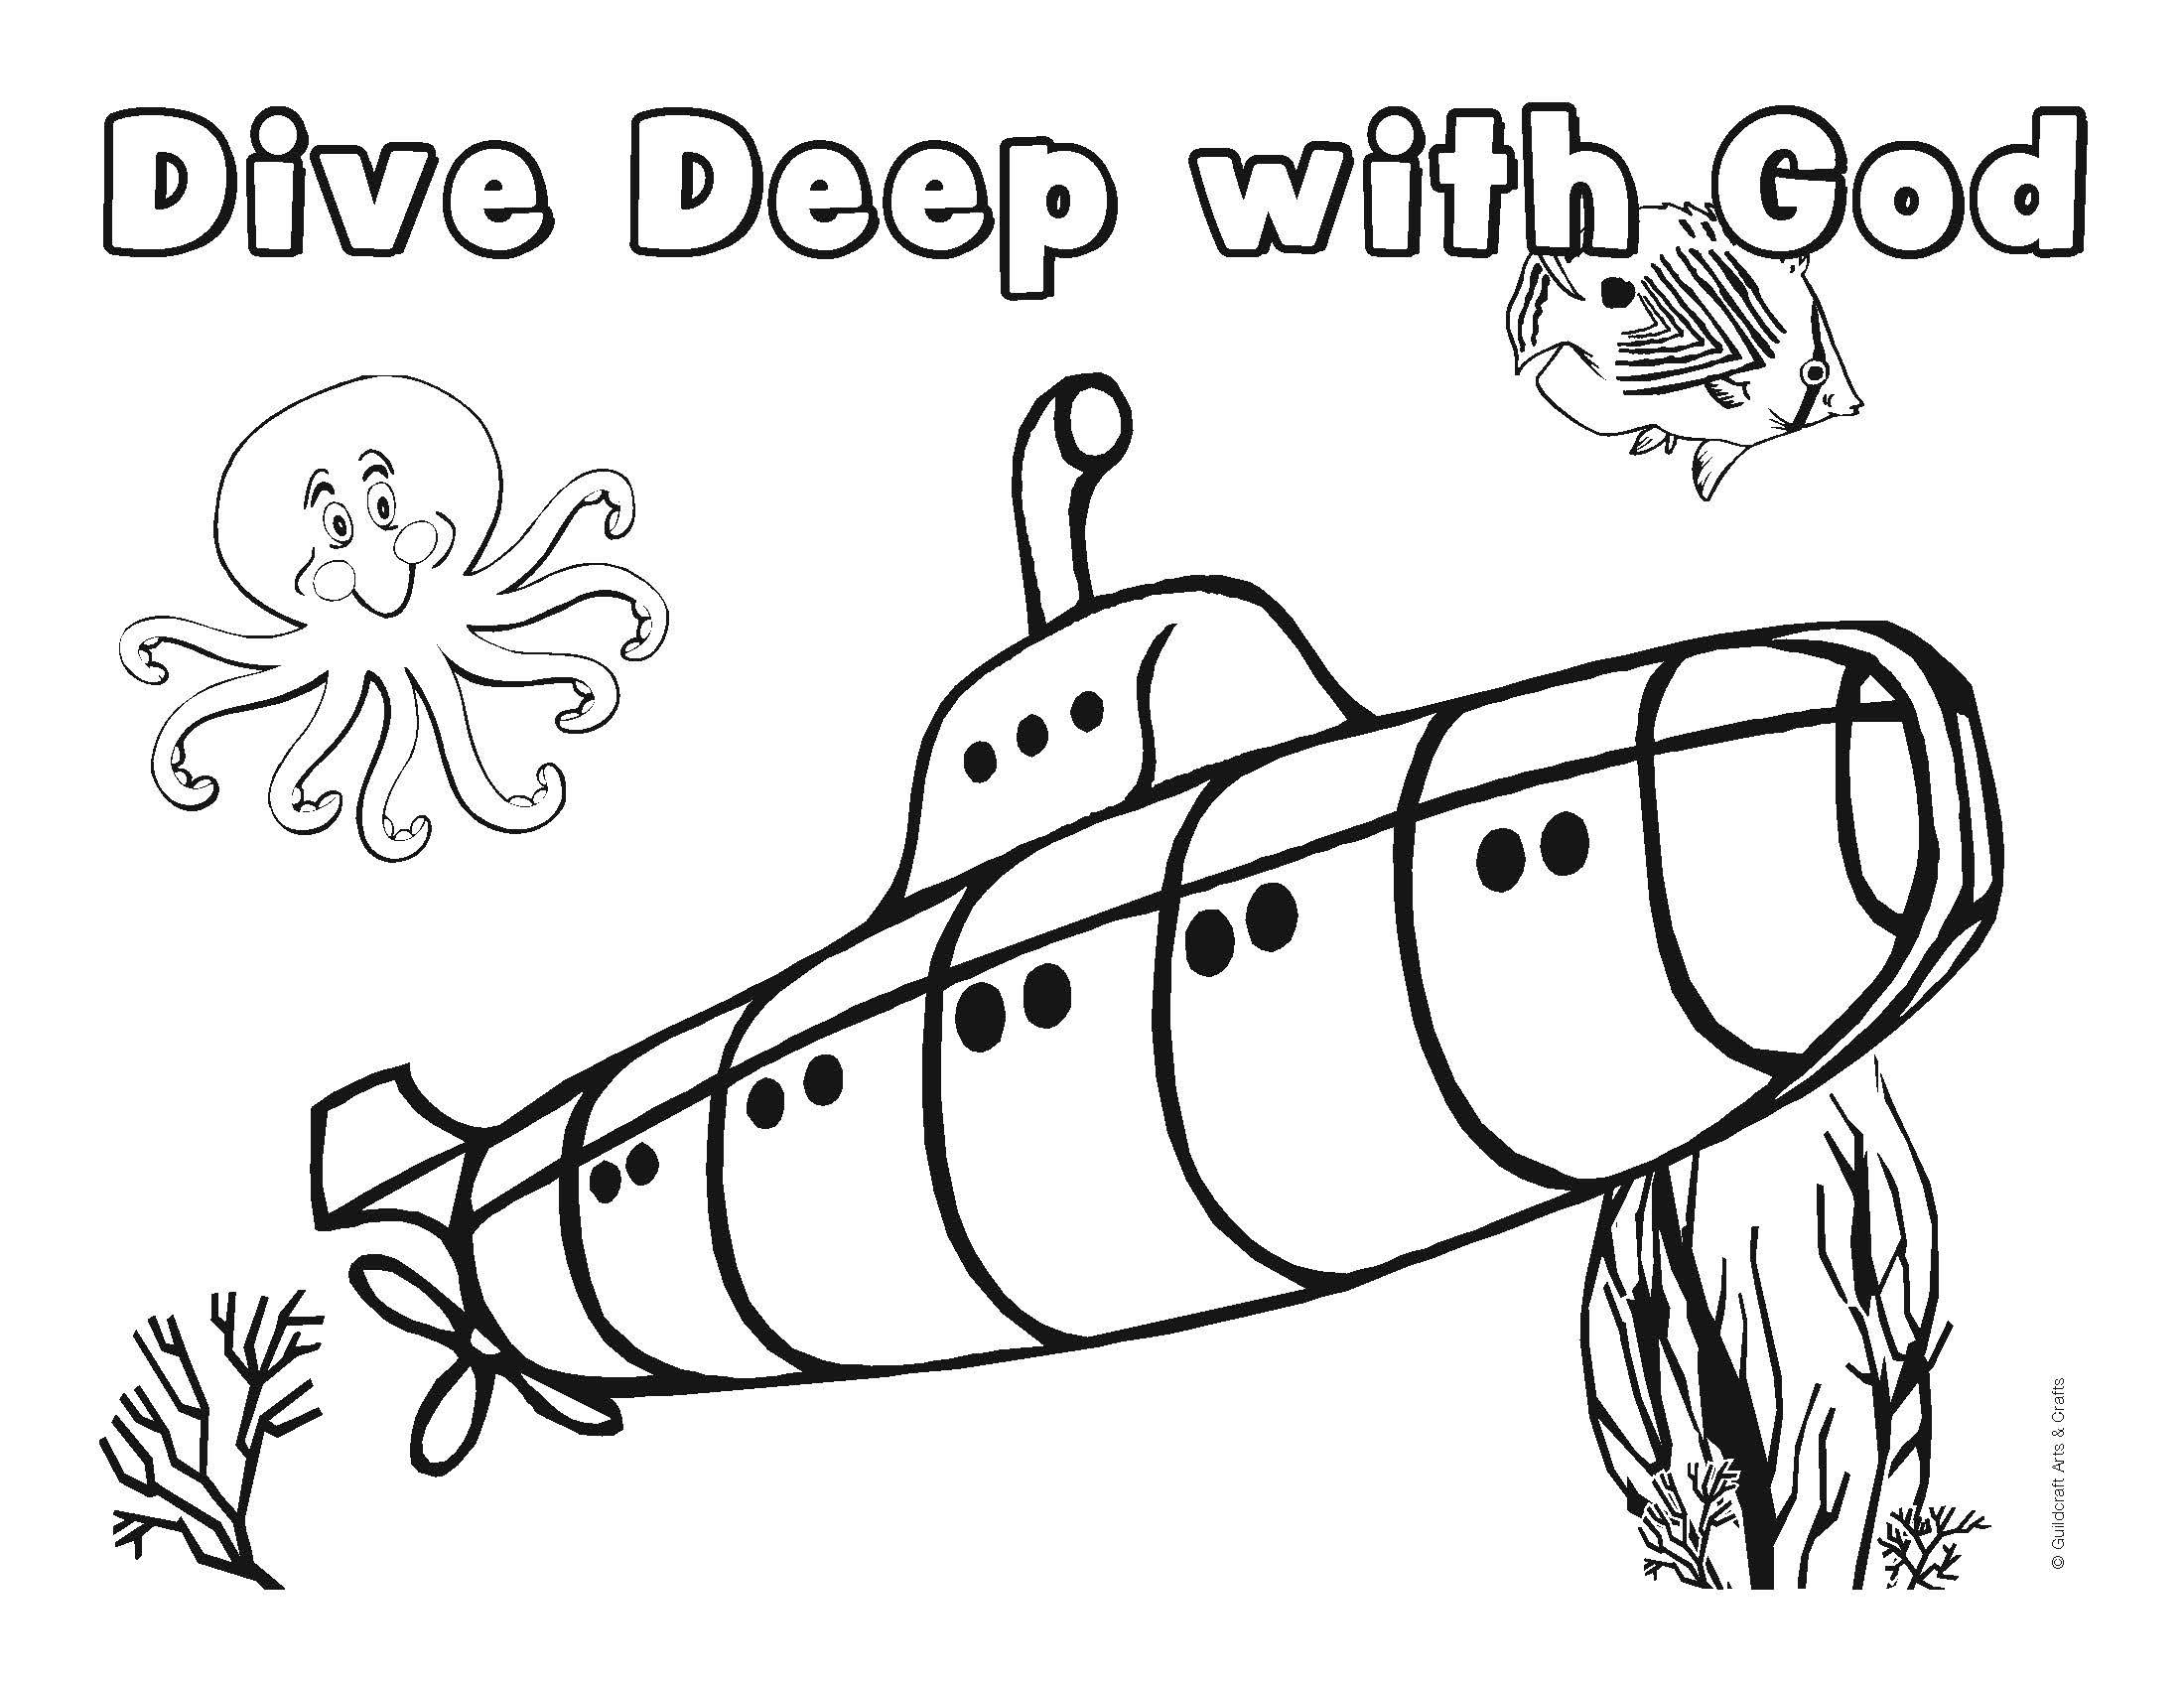 Vbs Underwater Coloring Sheet Submerged Vbs Vbs 2016 Vbs Crafts